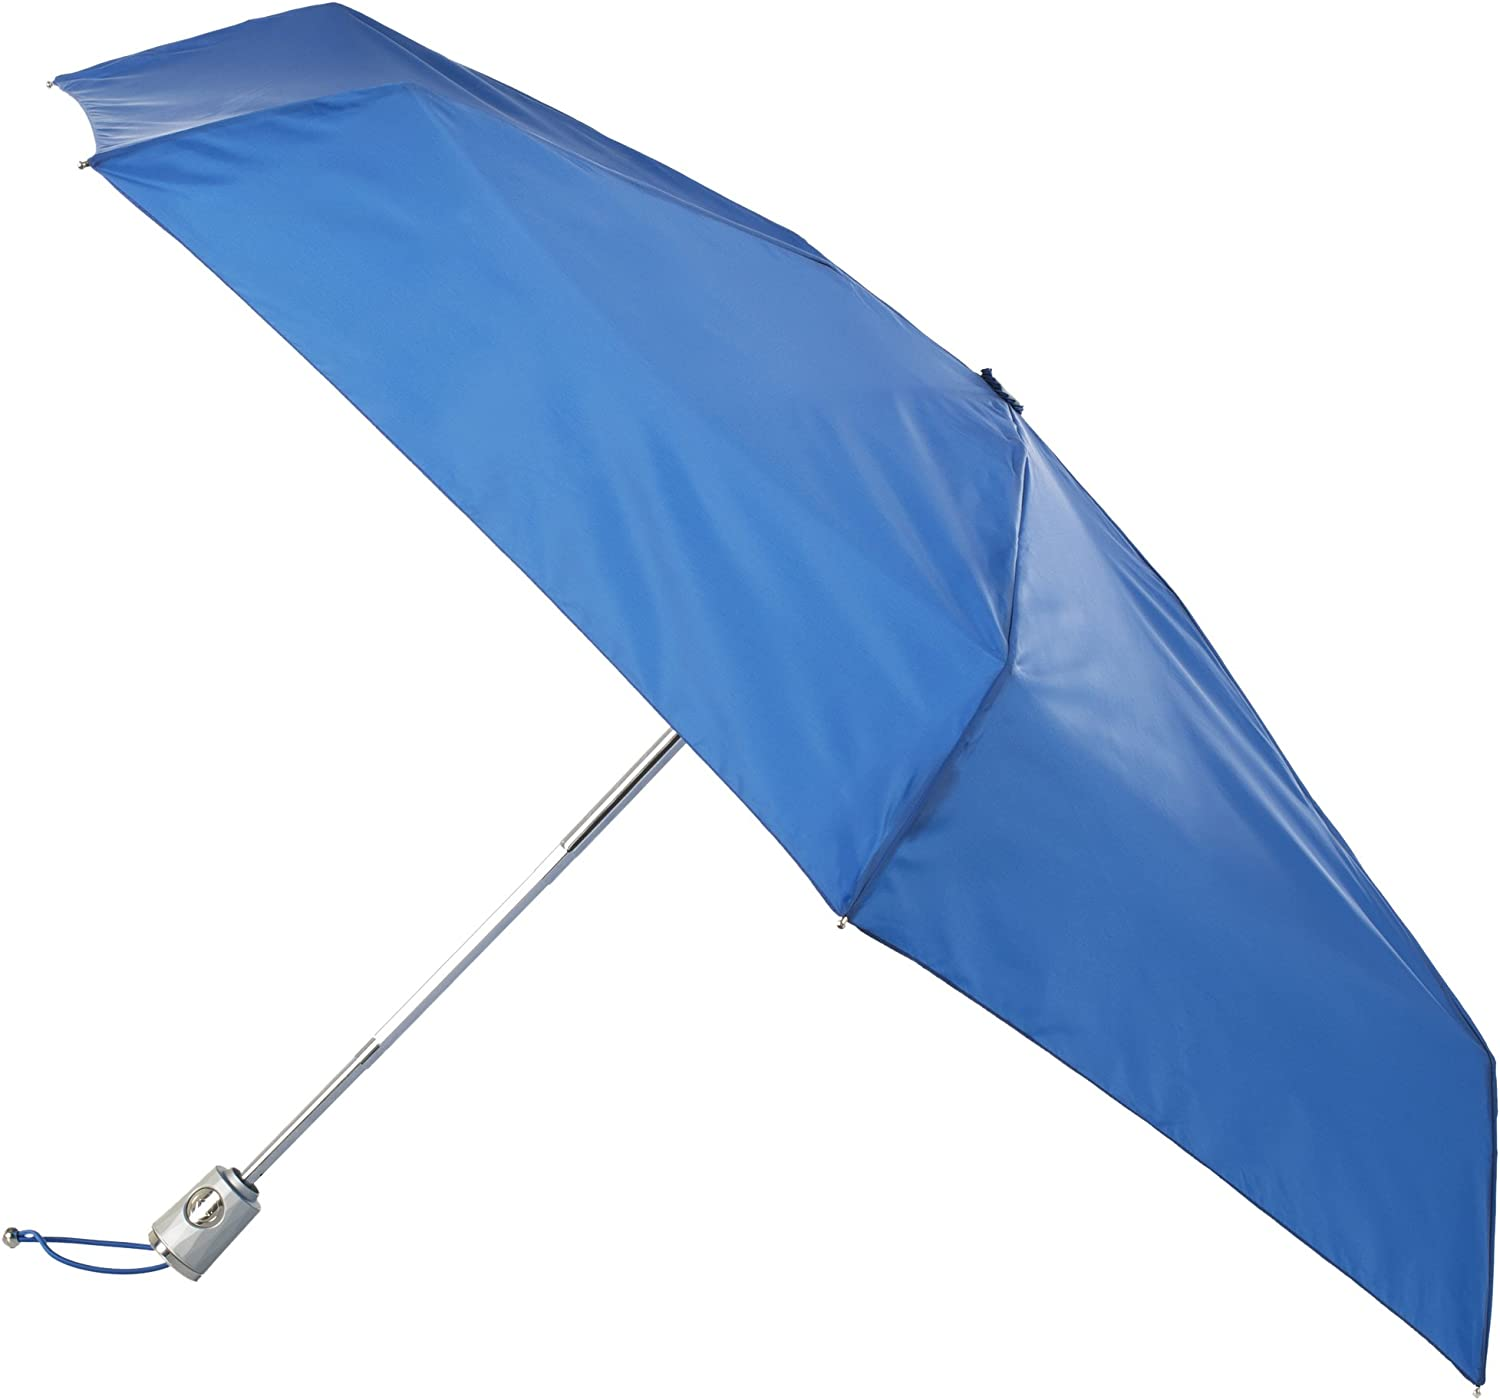 Black totes Automatic Open Close Water-Resistant Mini Travel Foldable Umbrella with Sun Protection